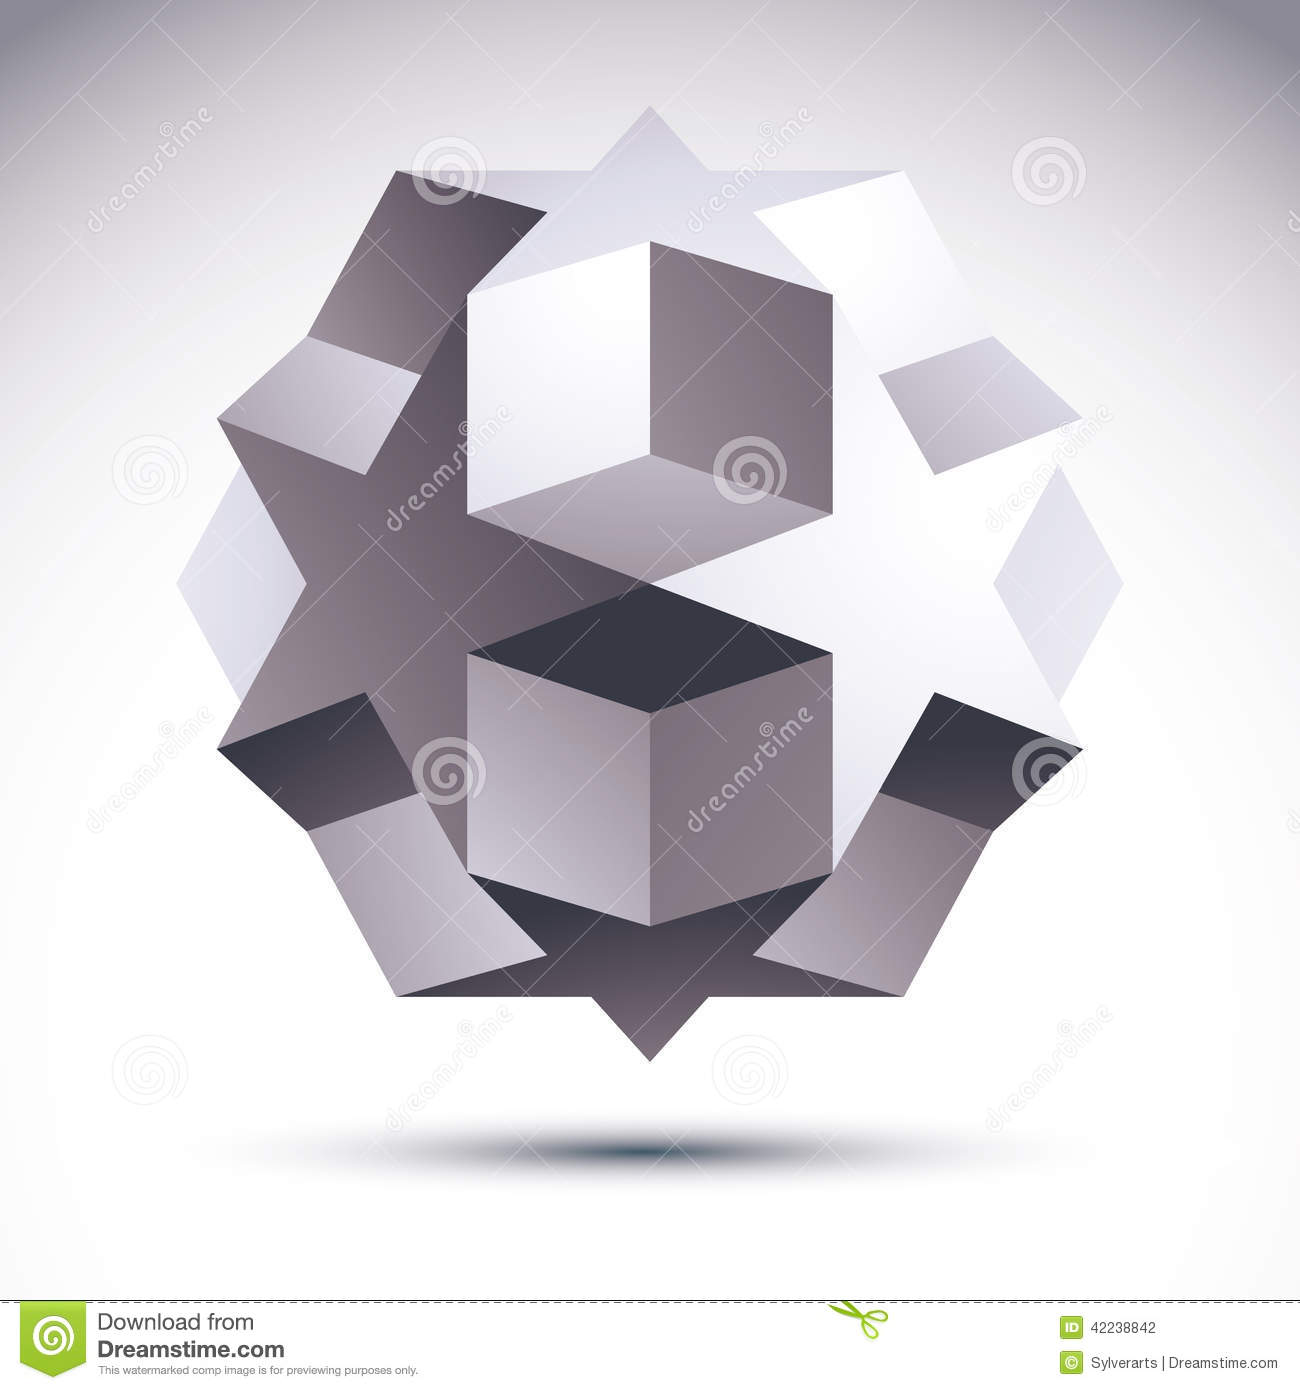 Abstract 3d origami polygonal object vector geometric design el stock vector image 42238842 - Object design eigentijds ontwerp ...